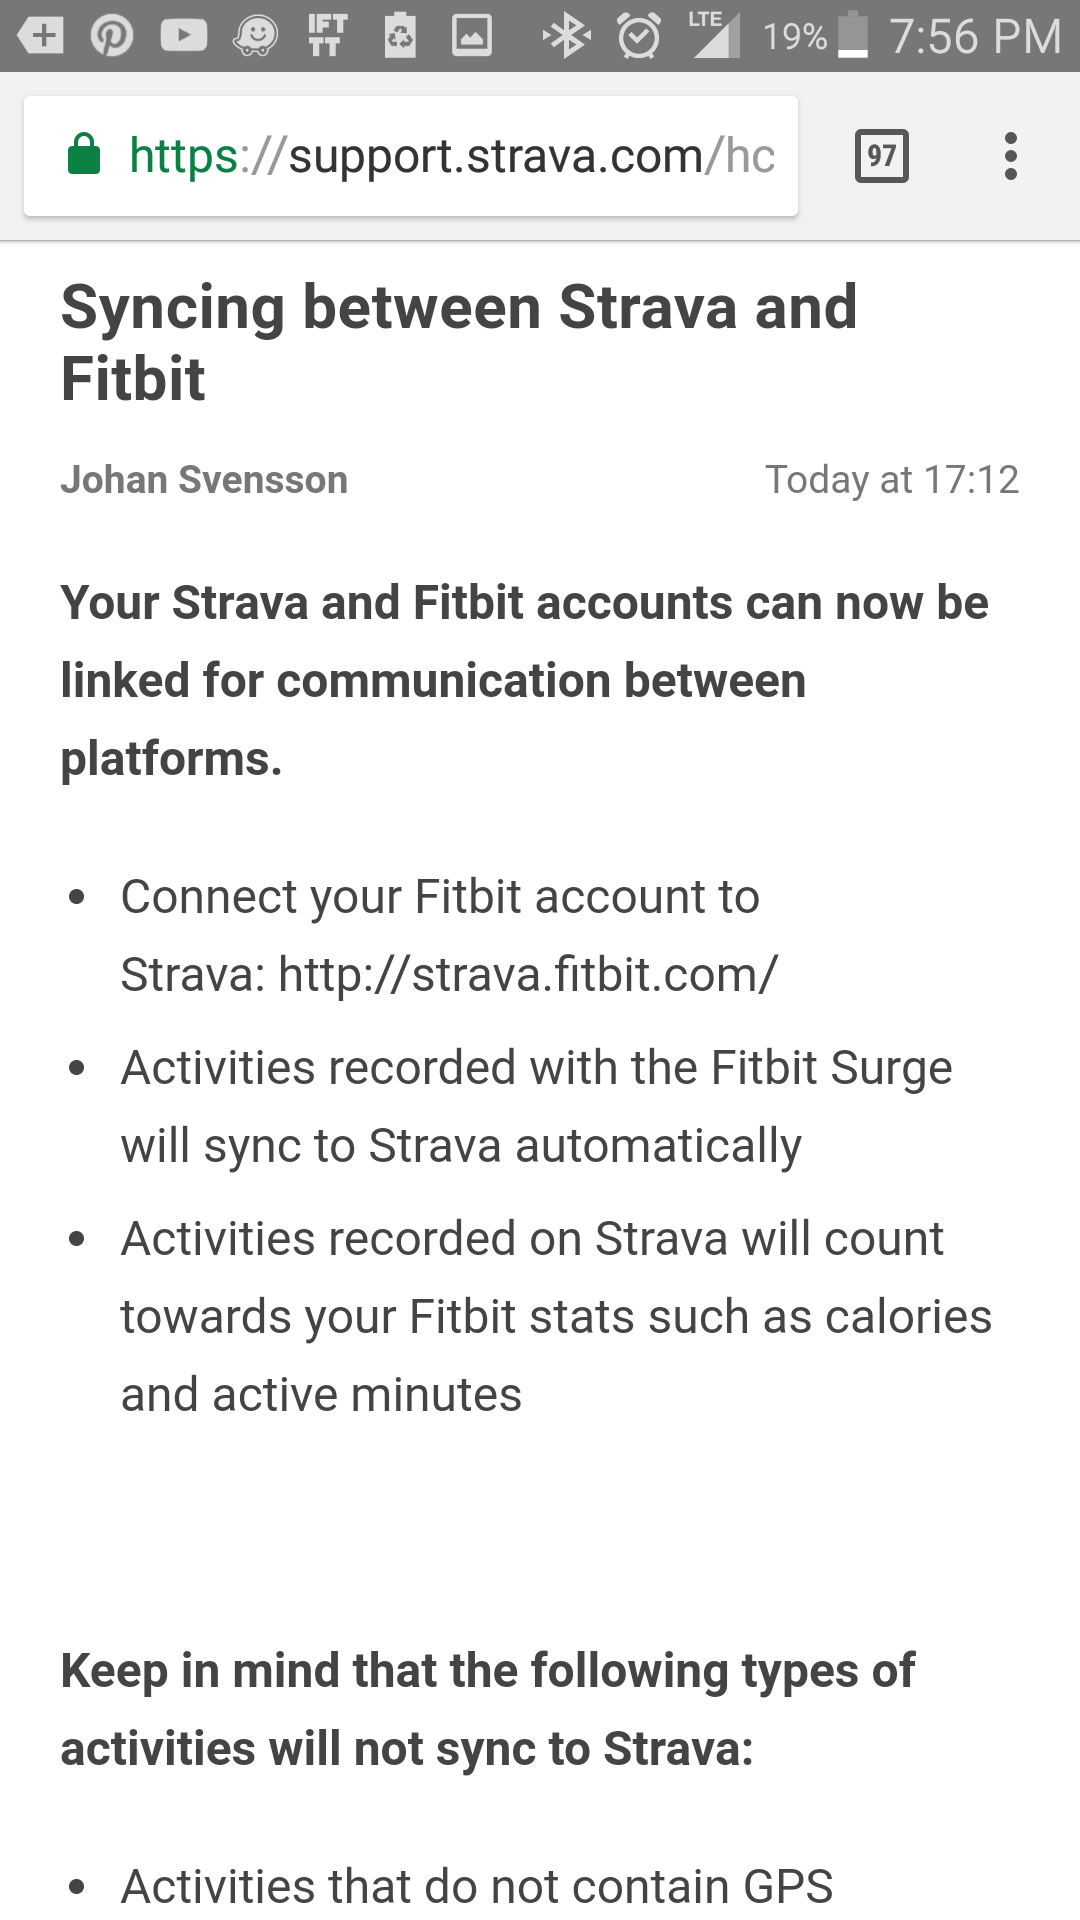 Strava Fitbit syncing down? - Fitbit Community